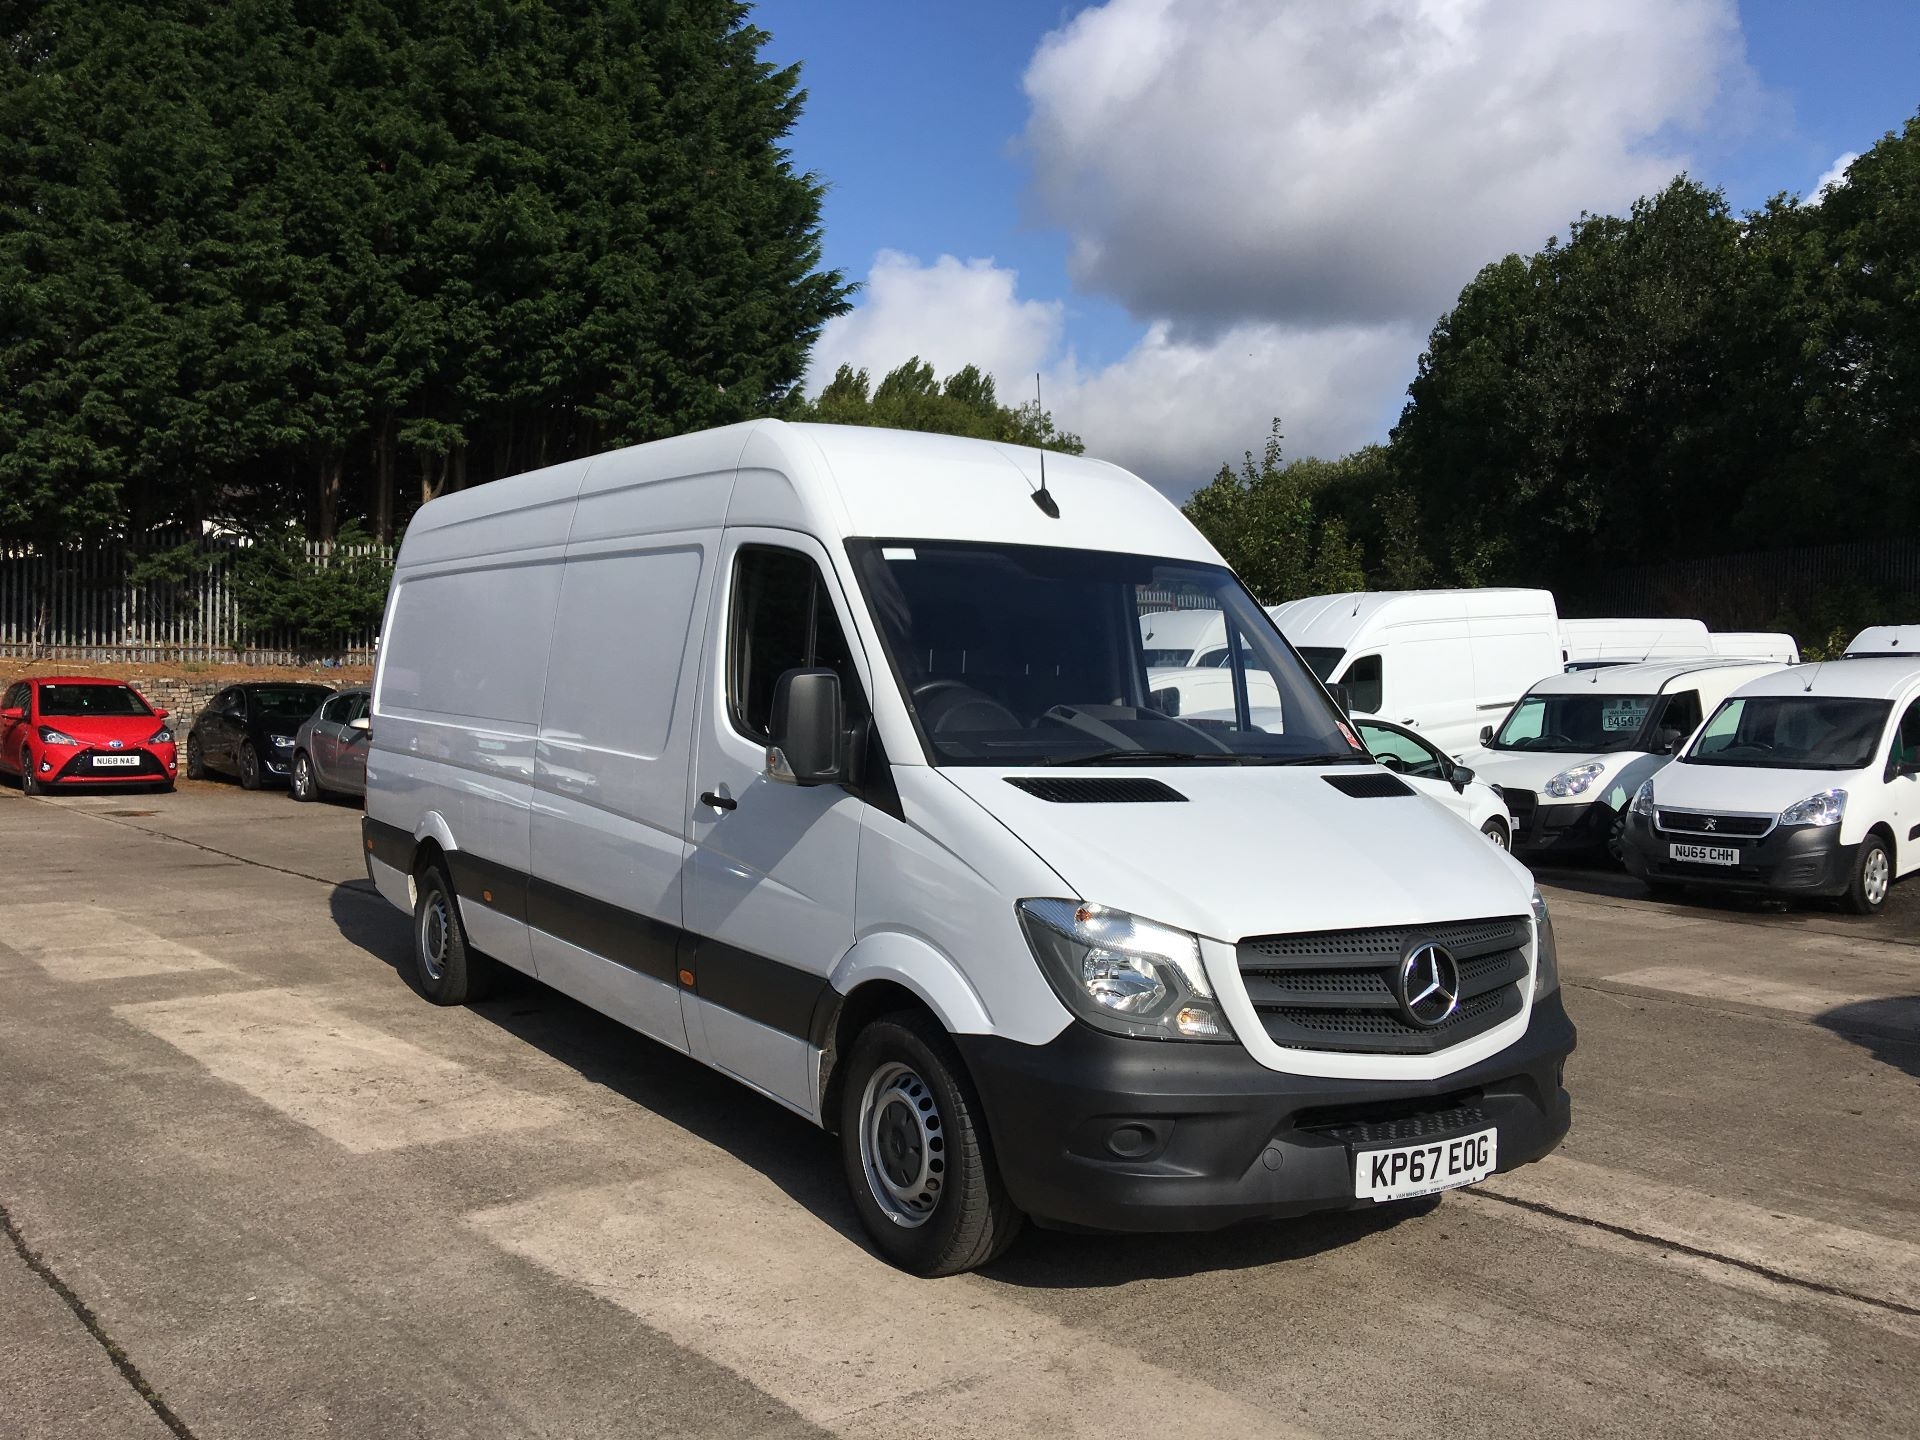 2017 Mercedes-Benz Sprinter 314 CDI LWB HIGH ROOF VAN EURO 6 (KP67EOG) Thumbnail 1